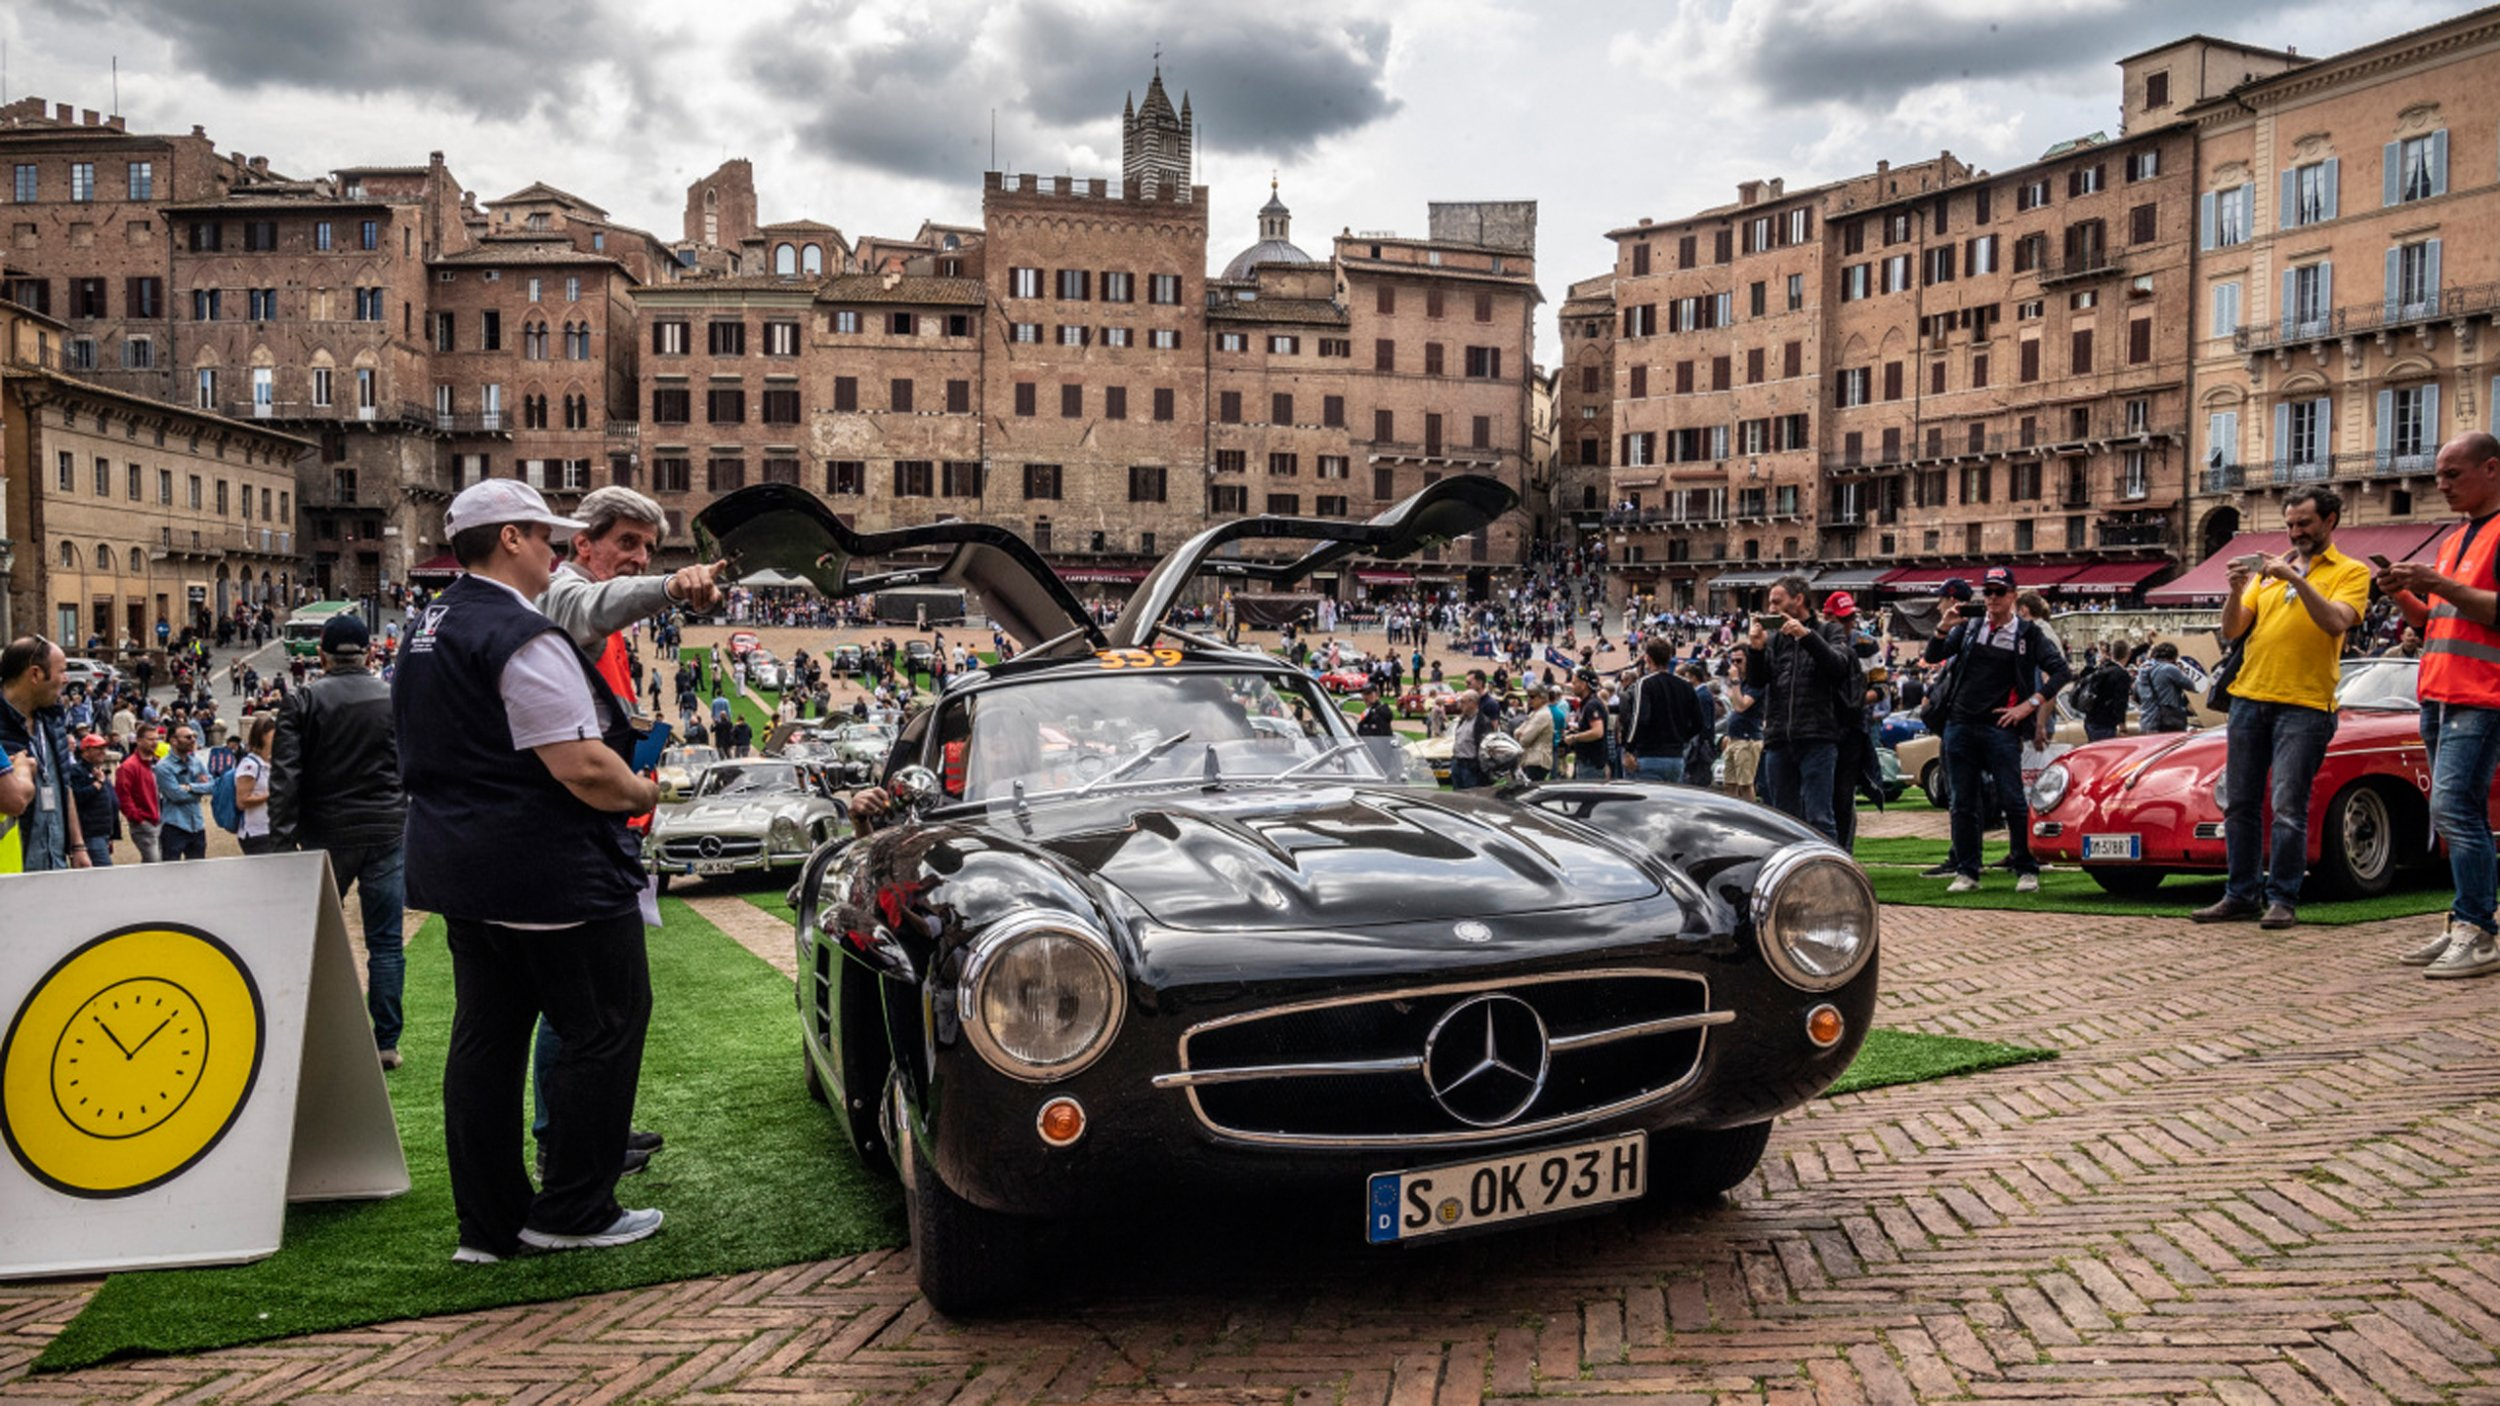 https://cdn1-cloud.mb-lounge.com/files/HQ-Events/Classic/Oldtimer%20Events/event-calendar-mille-miglia-2560x1440.jpg